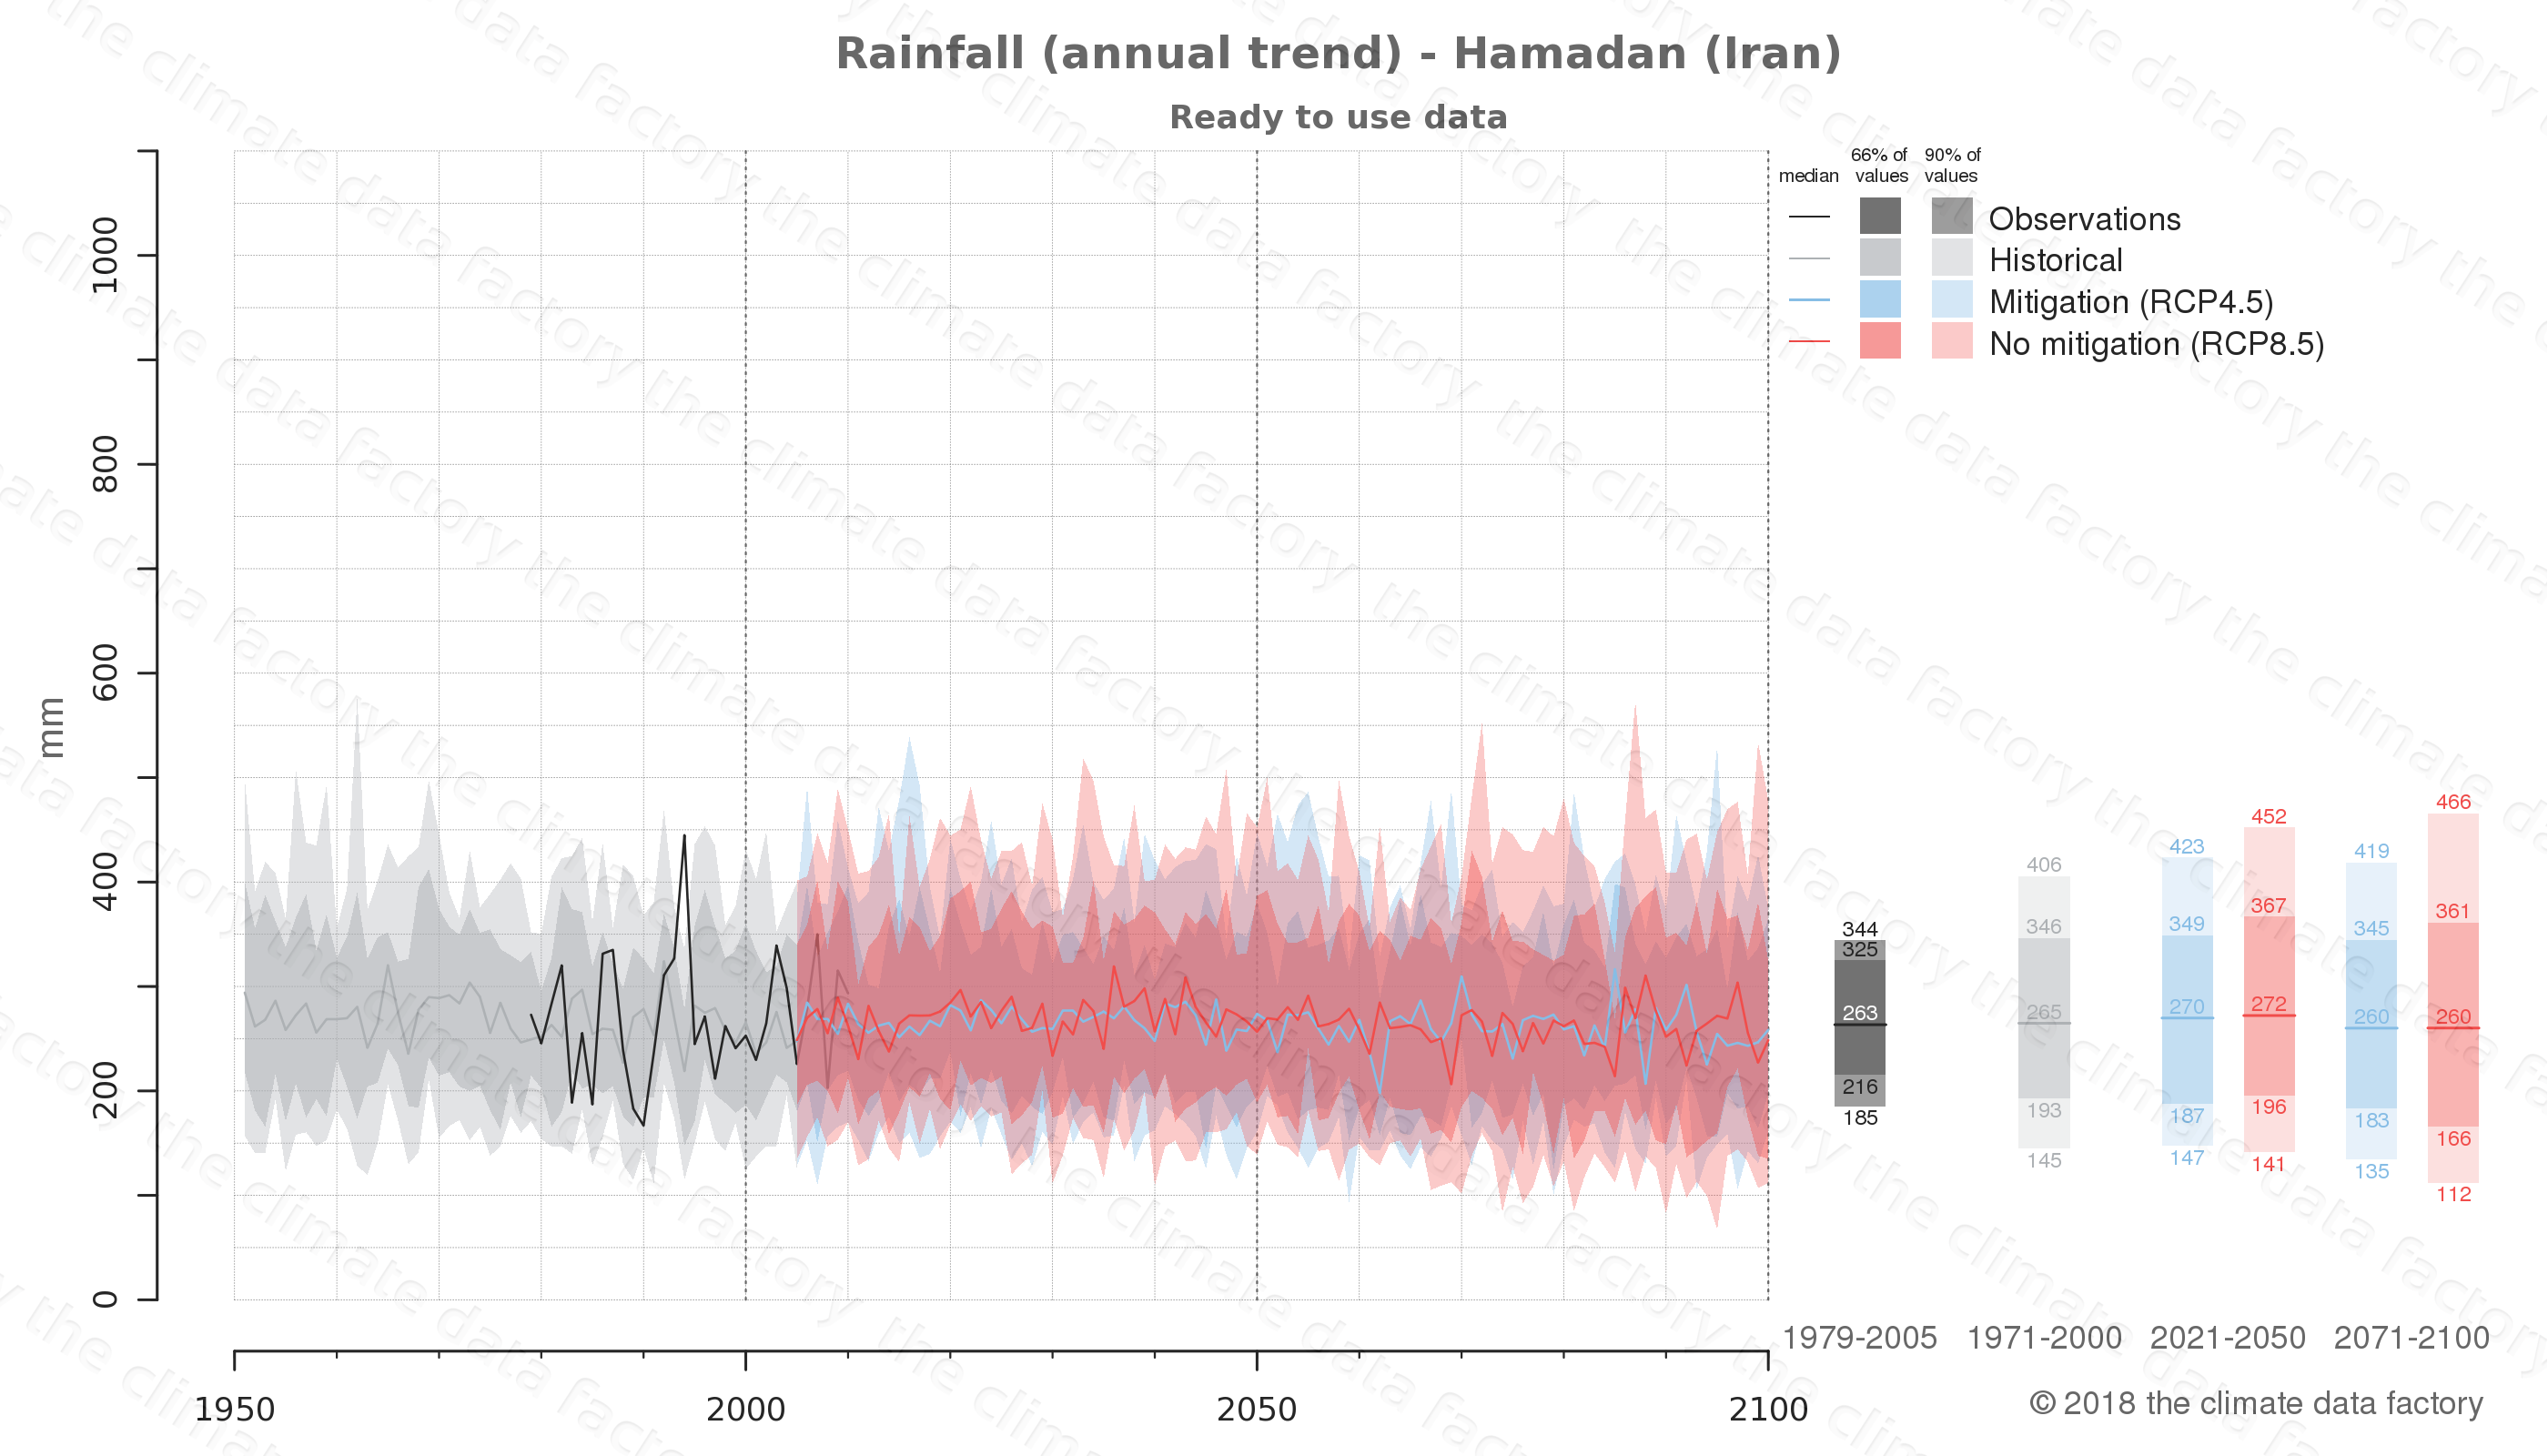 climate change data policy adaptation climate graph city data rainfall hamadan iran